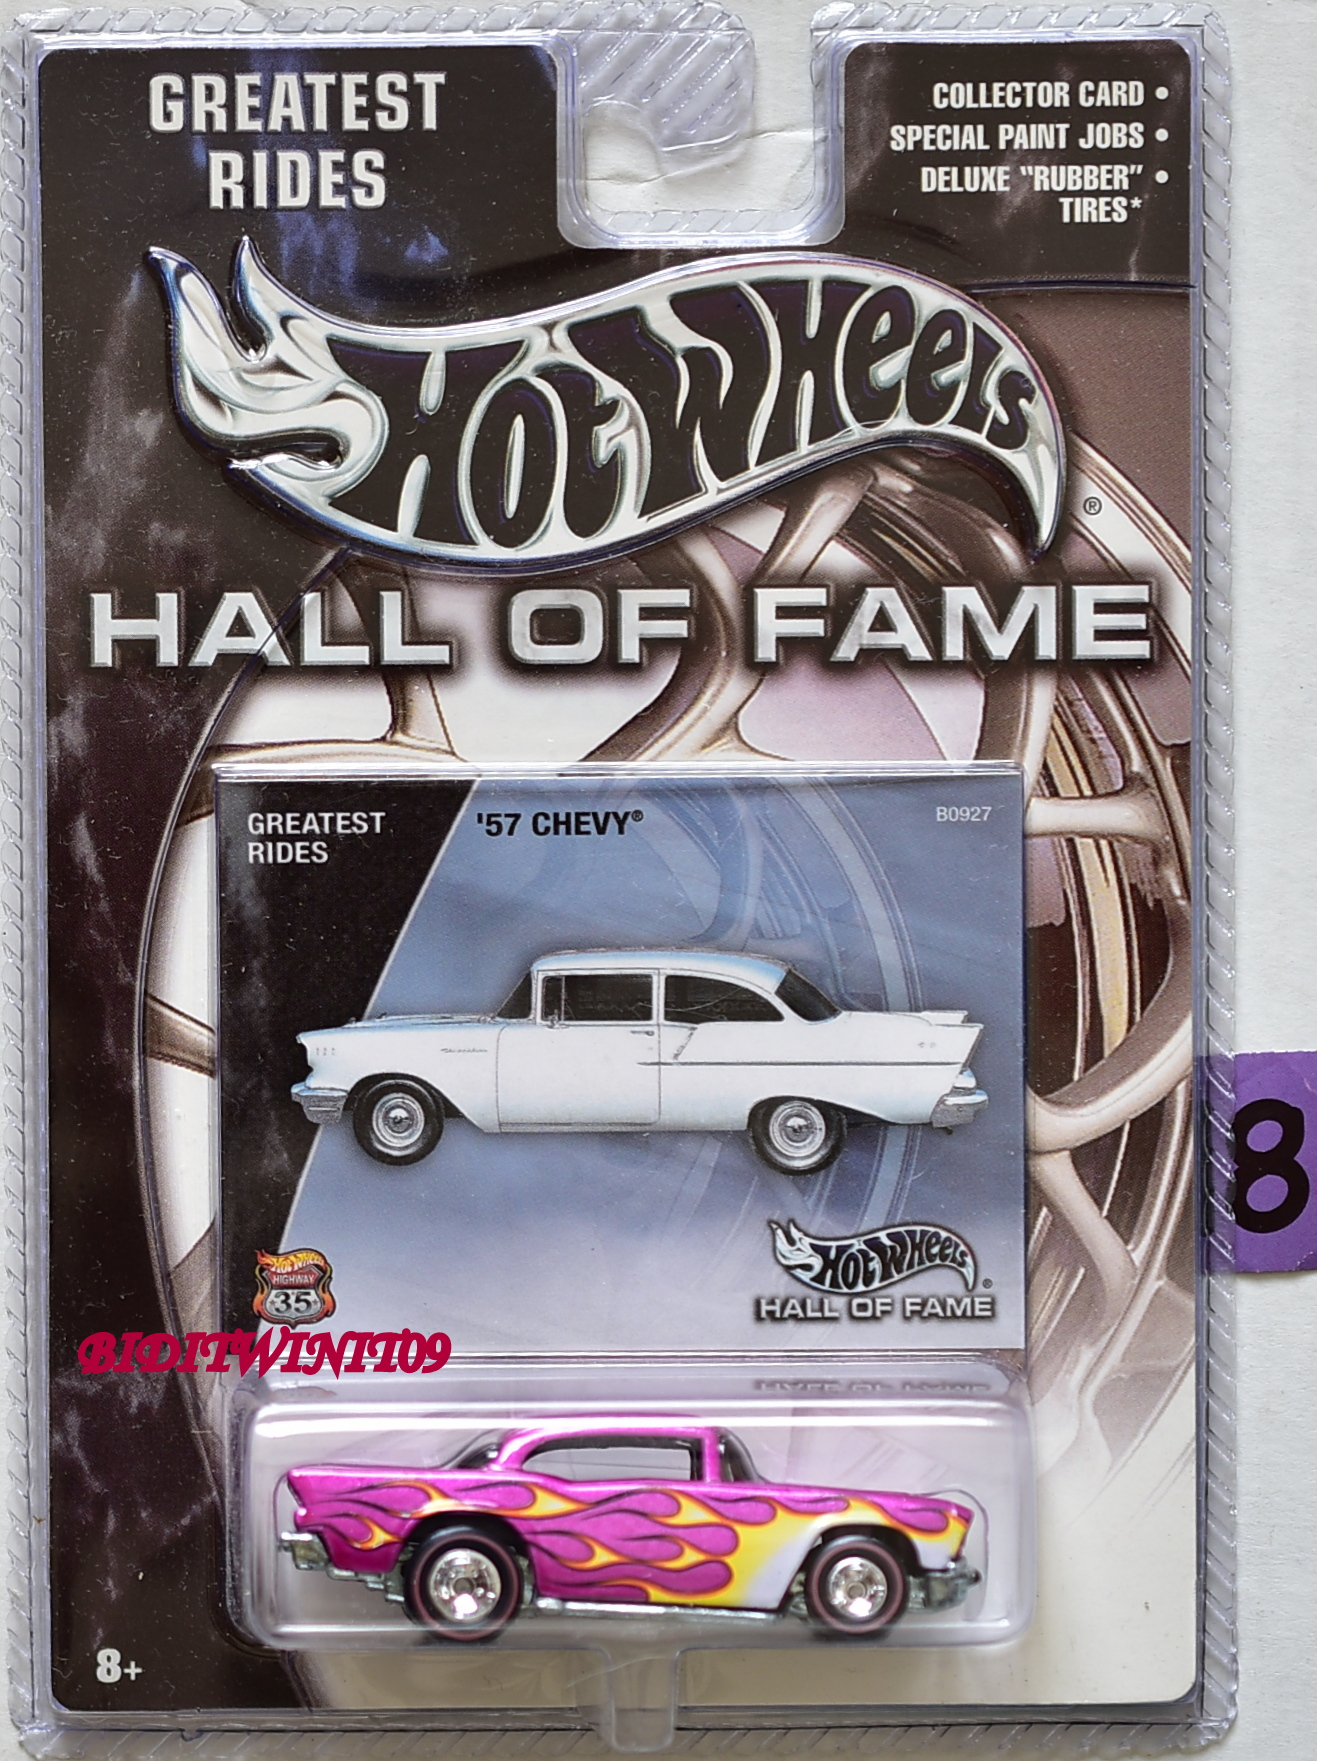 HOT WHEELS HALL OF FAME GREATEST RIDES - '57 CHEVY